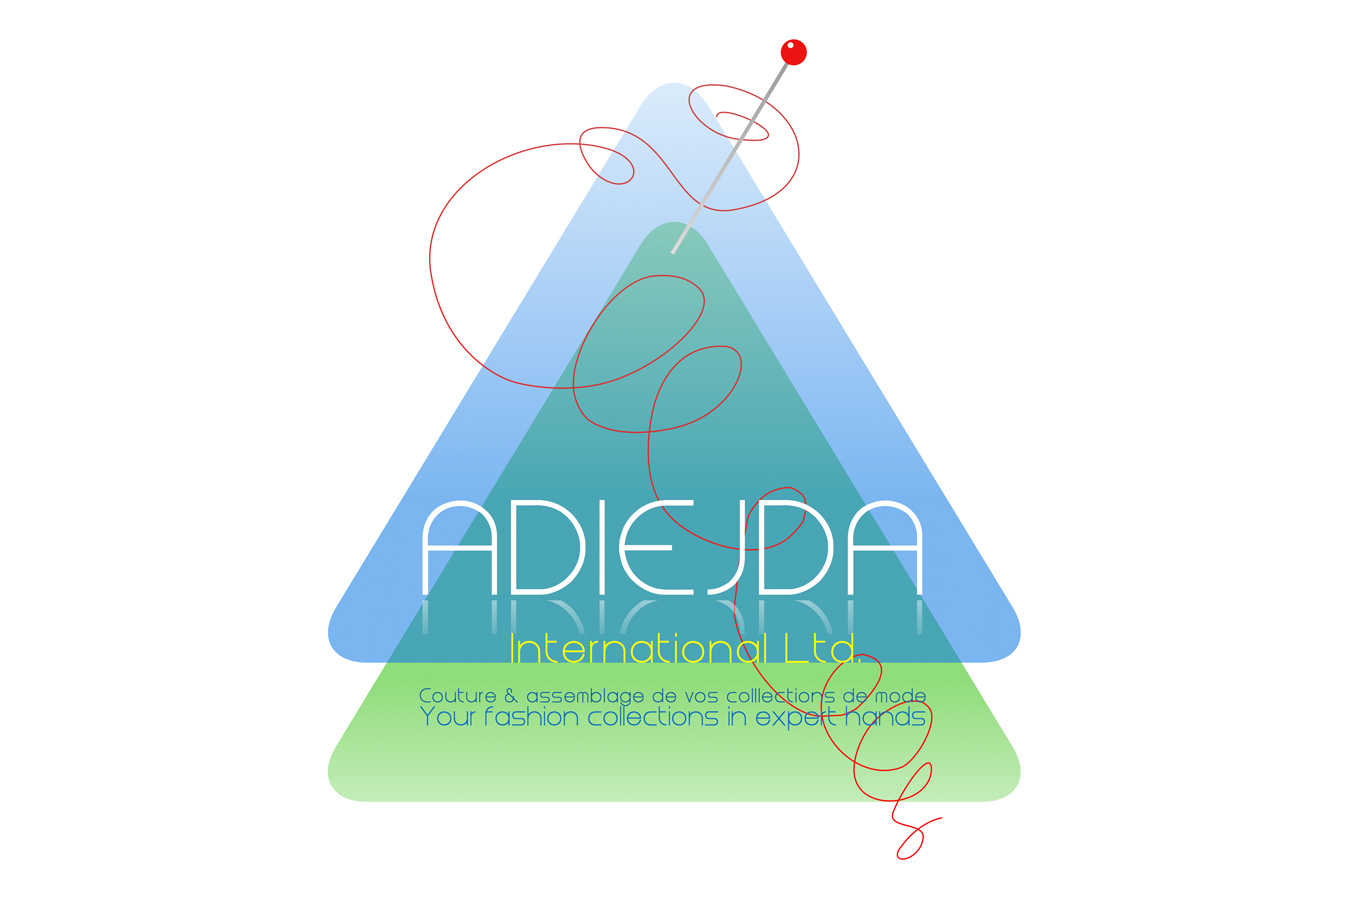 Logo_ADIEJDA_2015_MAKING_PROCESS_02_web.jpg